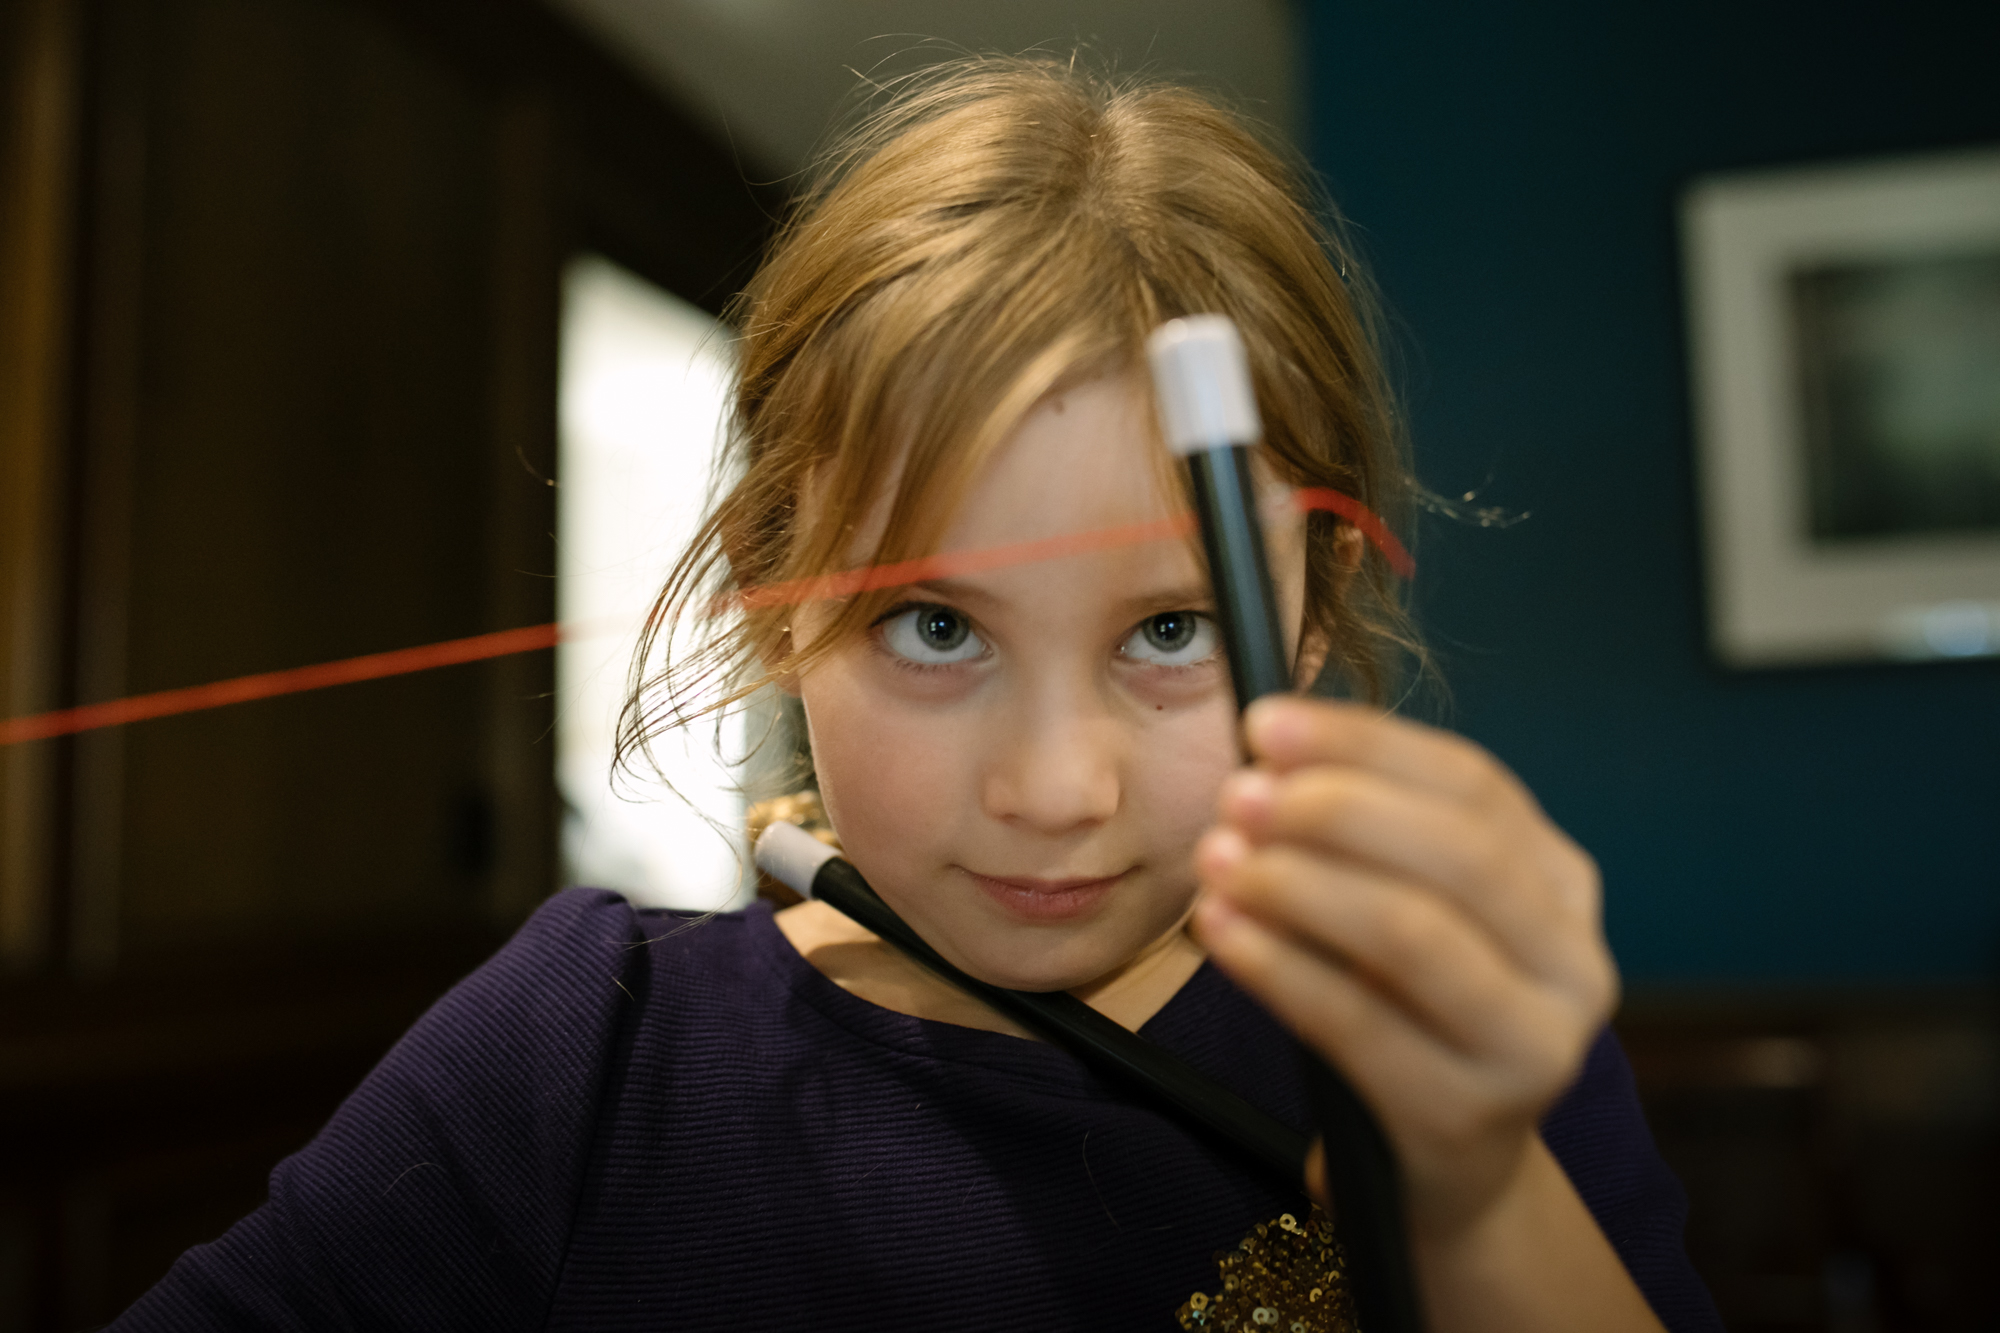 A girl looks at a string attached to a magic wand.